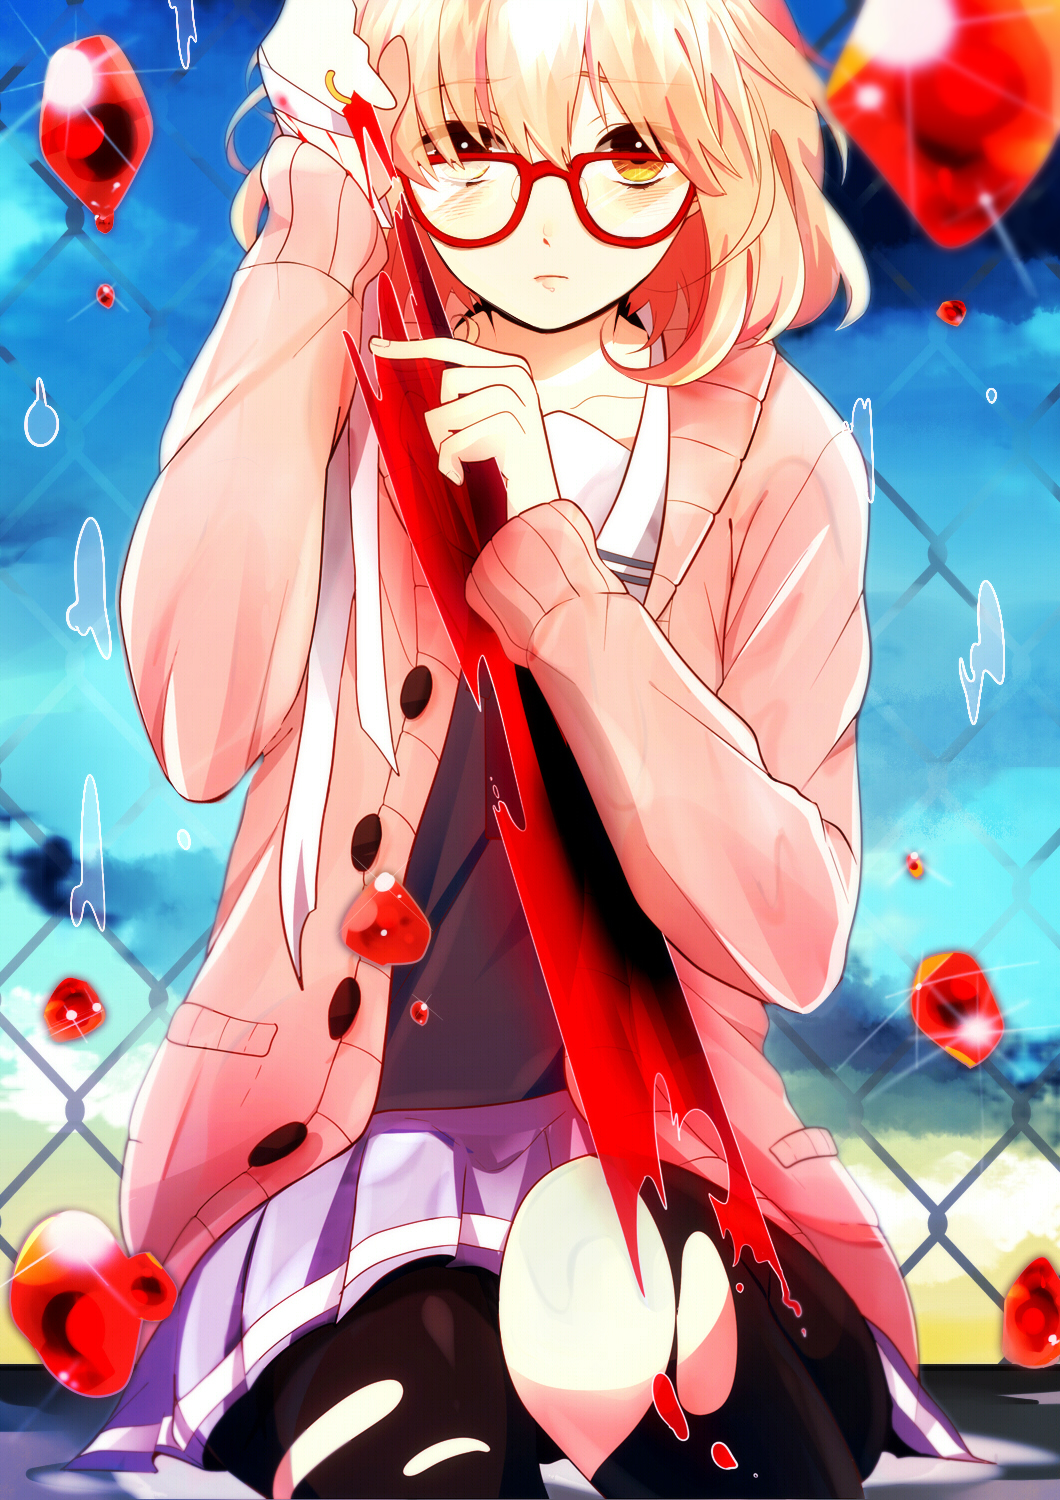 Kyoukai No Kanata Beyond The Boundary Mobile Wallpaper Zerochan